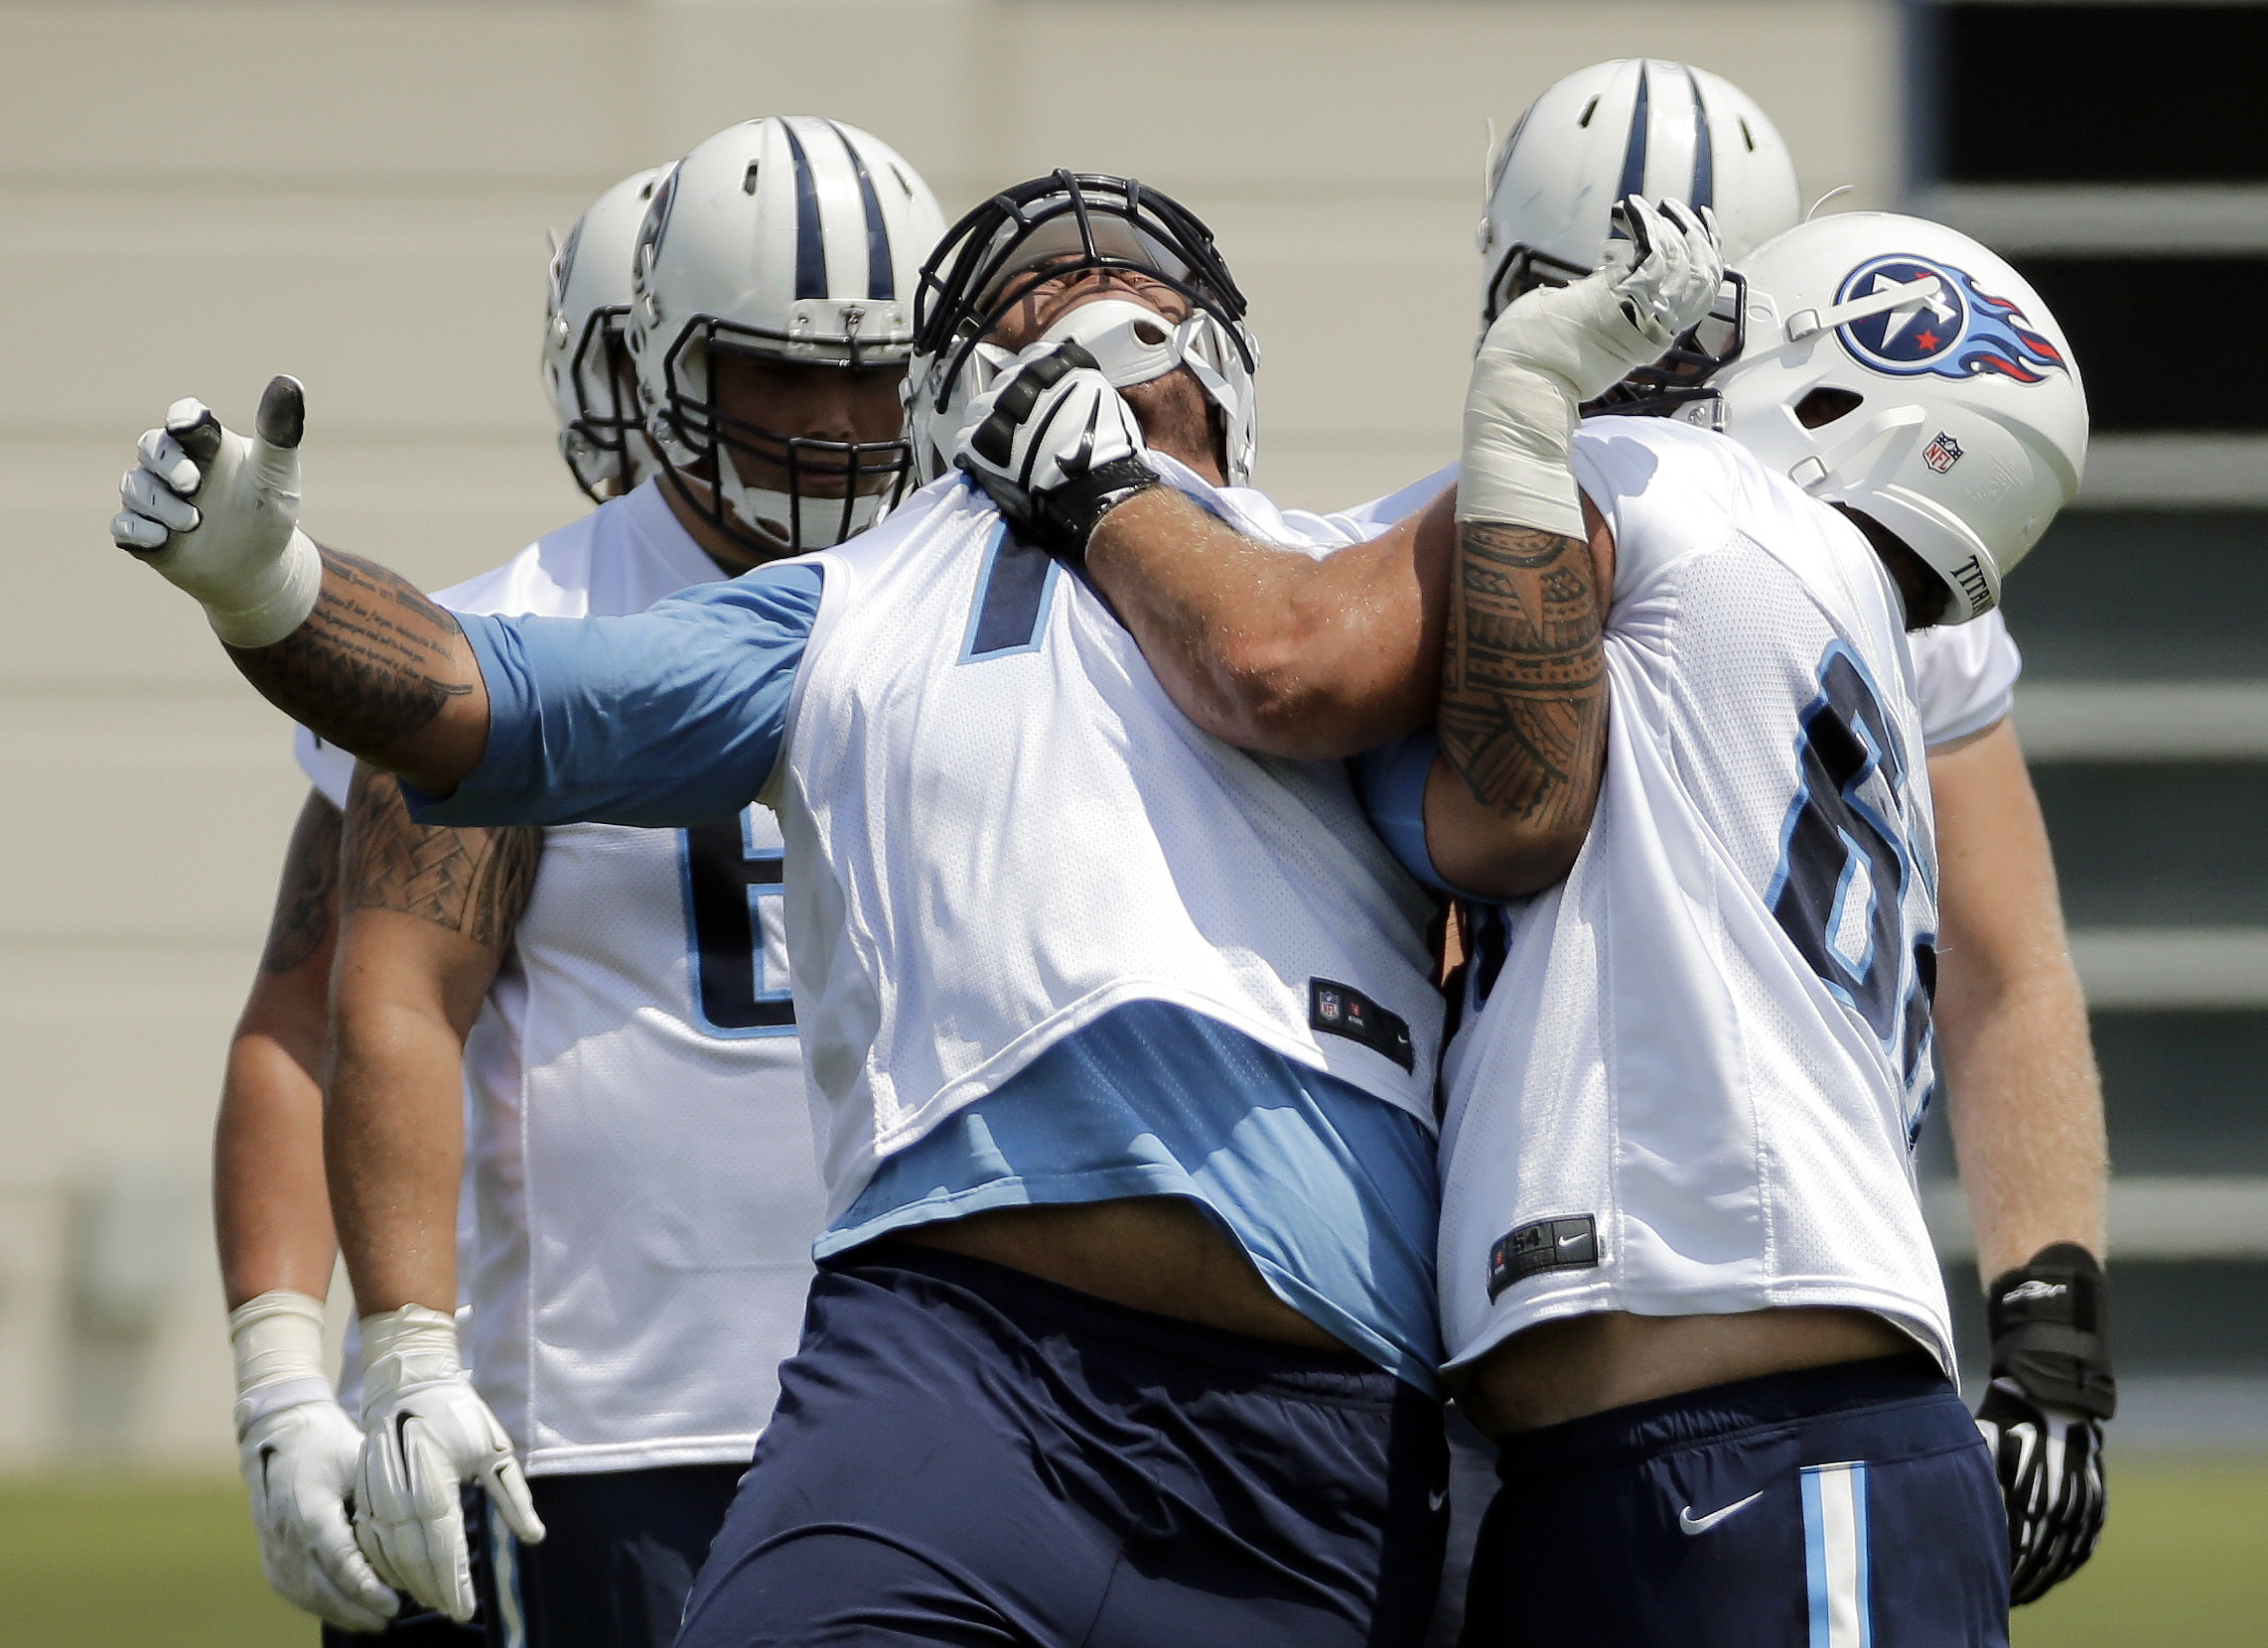 Tennessee Titans offensive linemen Tyler Marz, right, and Jeremiah Poutasi, center, run a drill during an NFL football practice, Wednesday, June 1, 2016, in Nashville, Tenn. (AP Photo/Mark Humphrey)